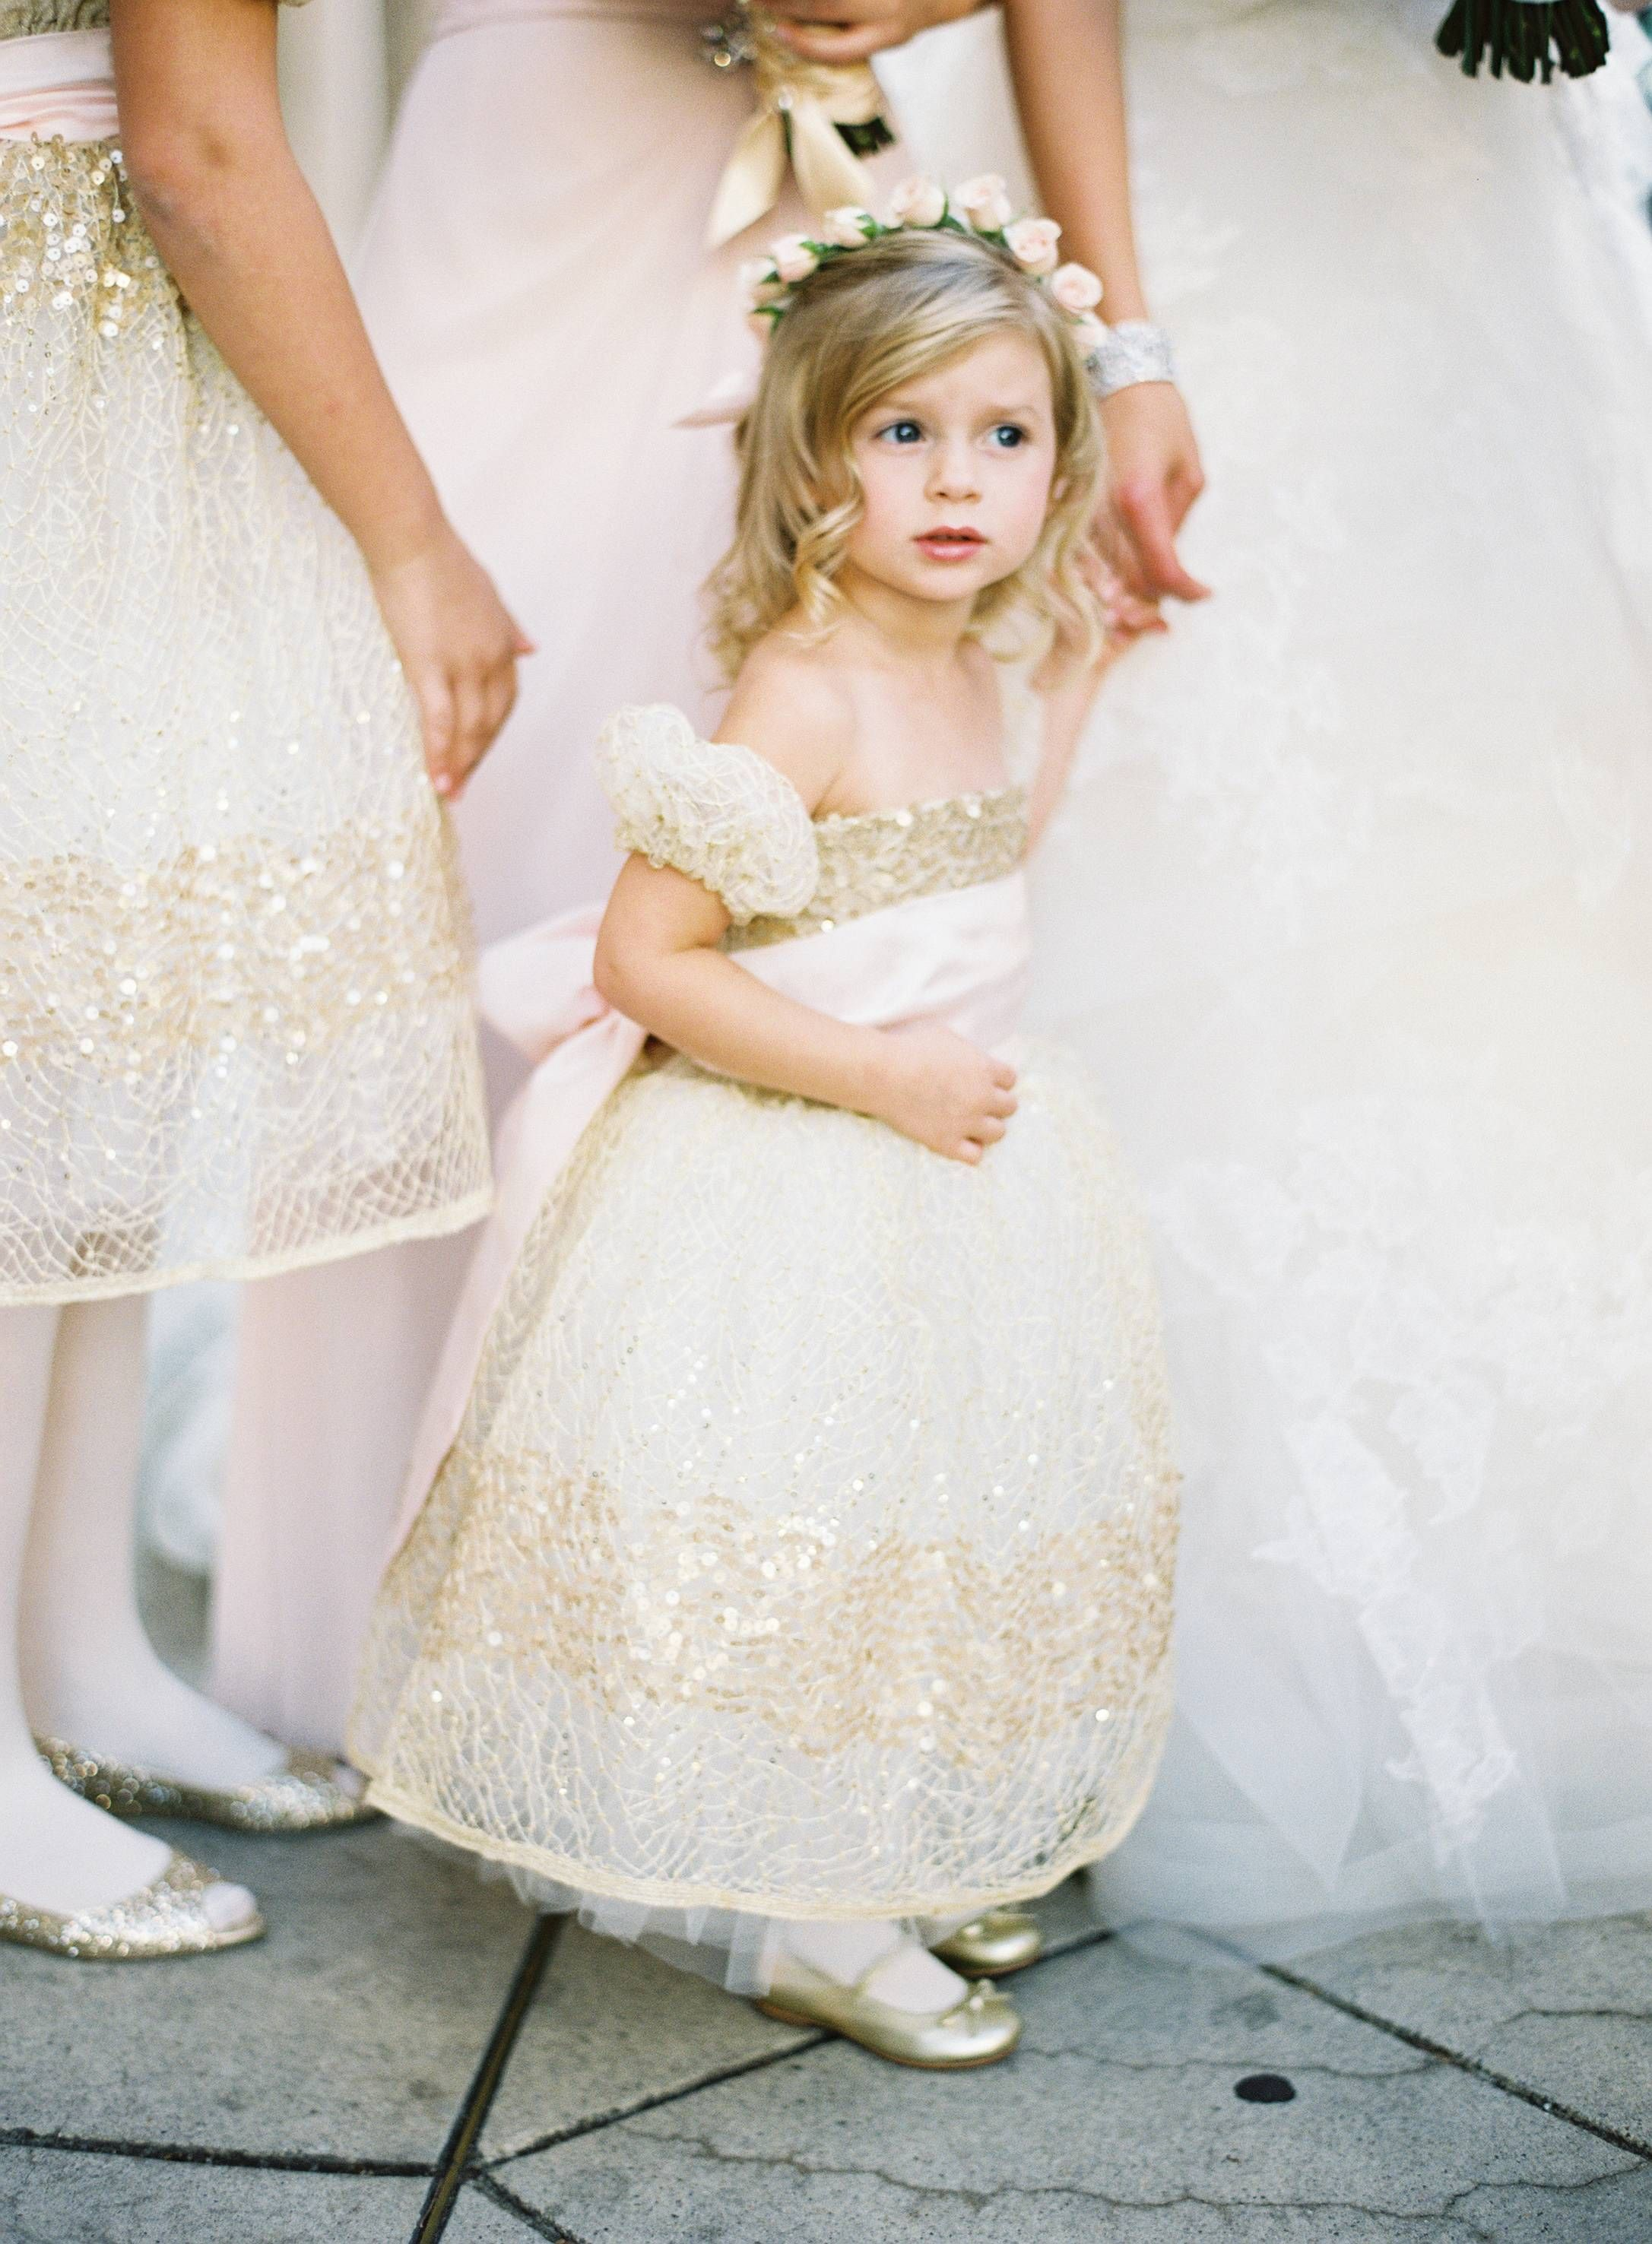 549cb8a43c7 Flower girls wore beautiful ball gowns adorned with gold sequins and  intricate embroidery. The youngest